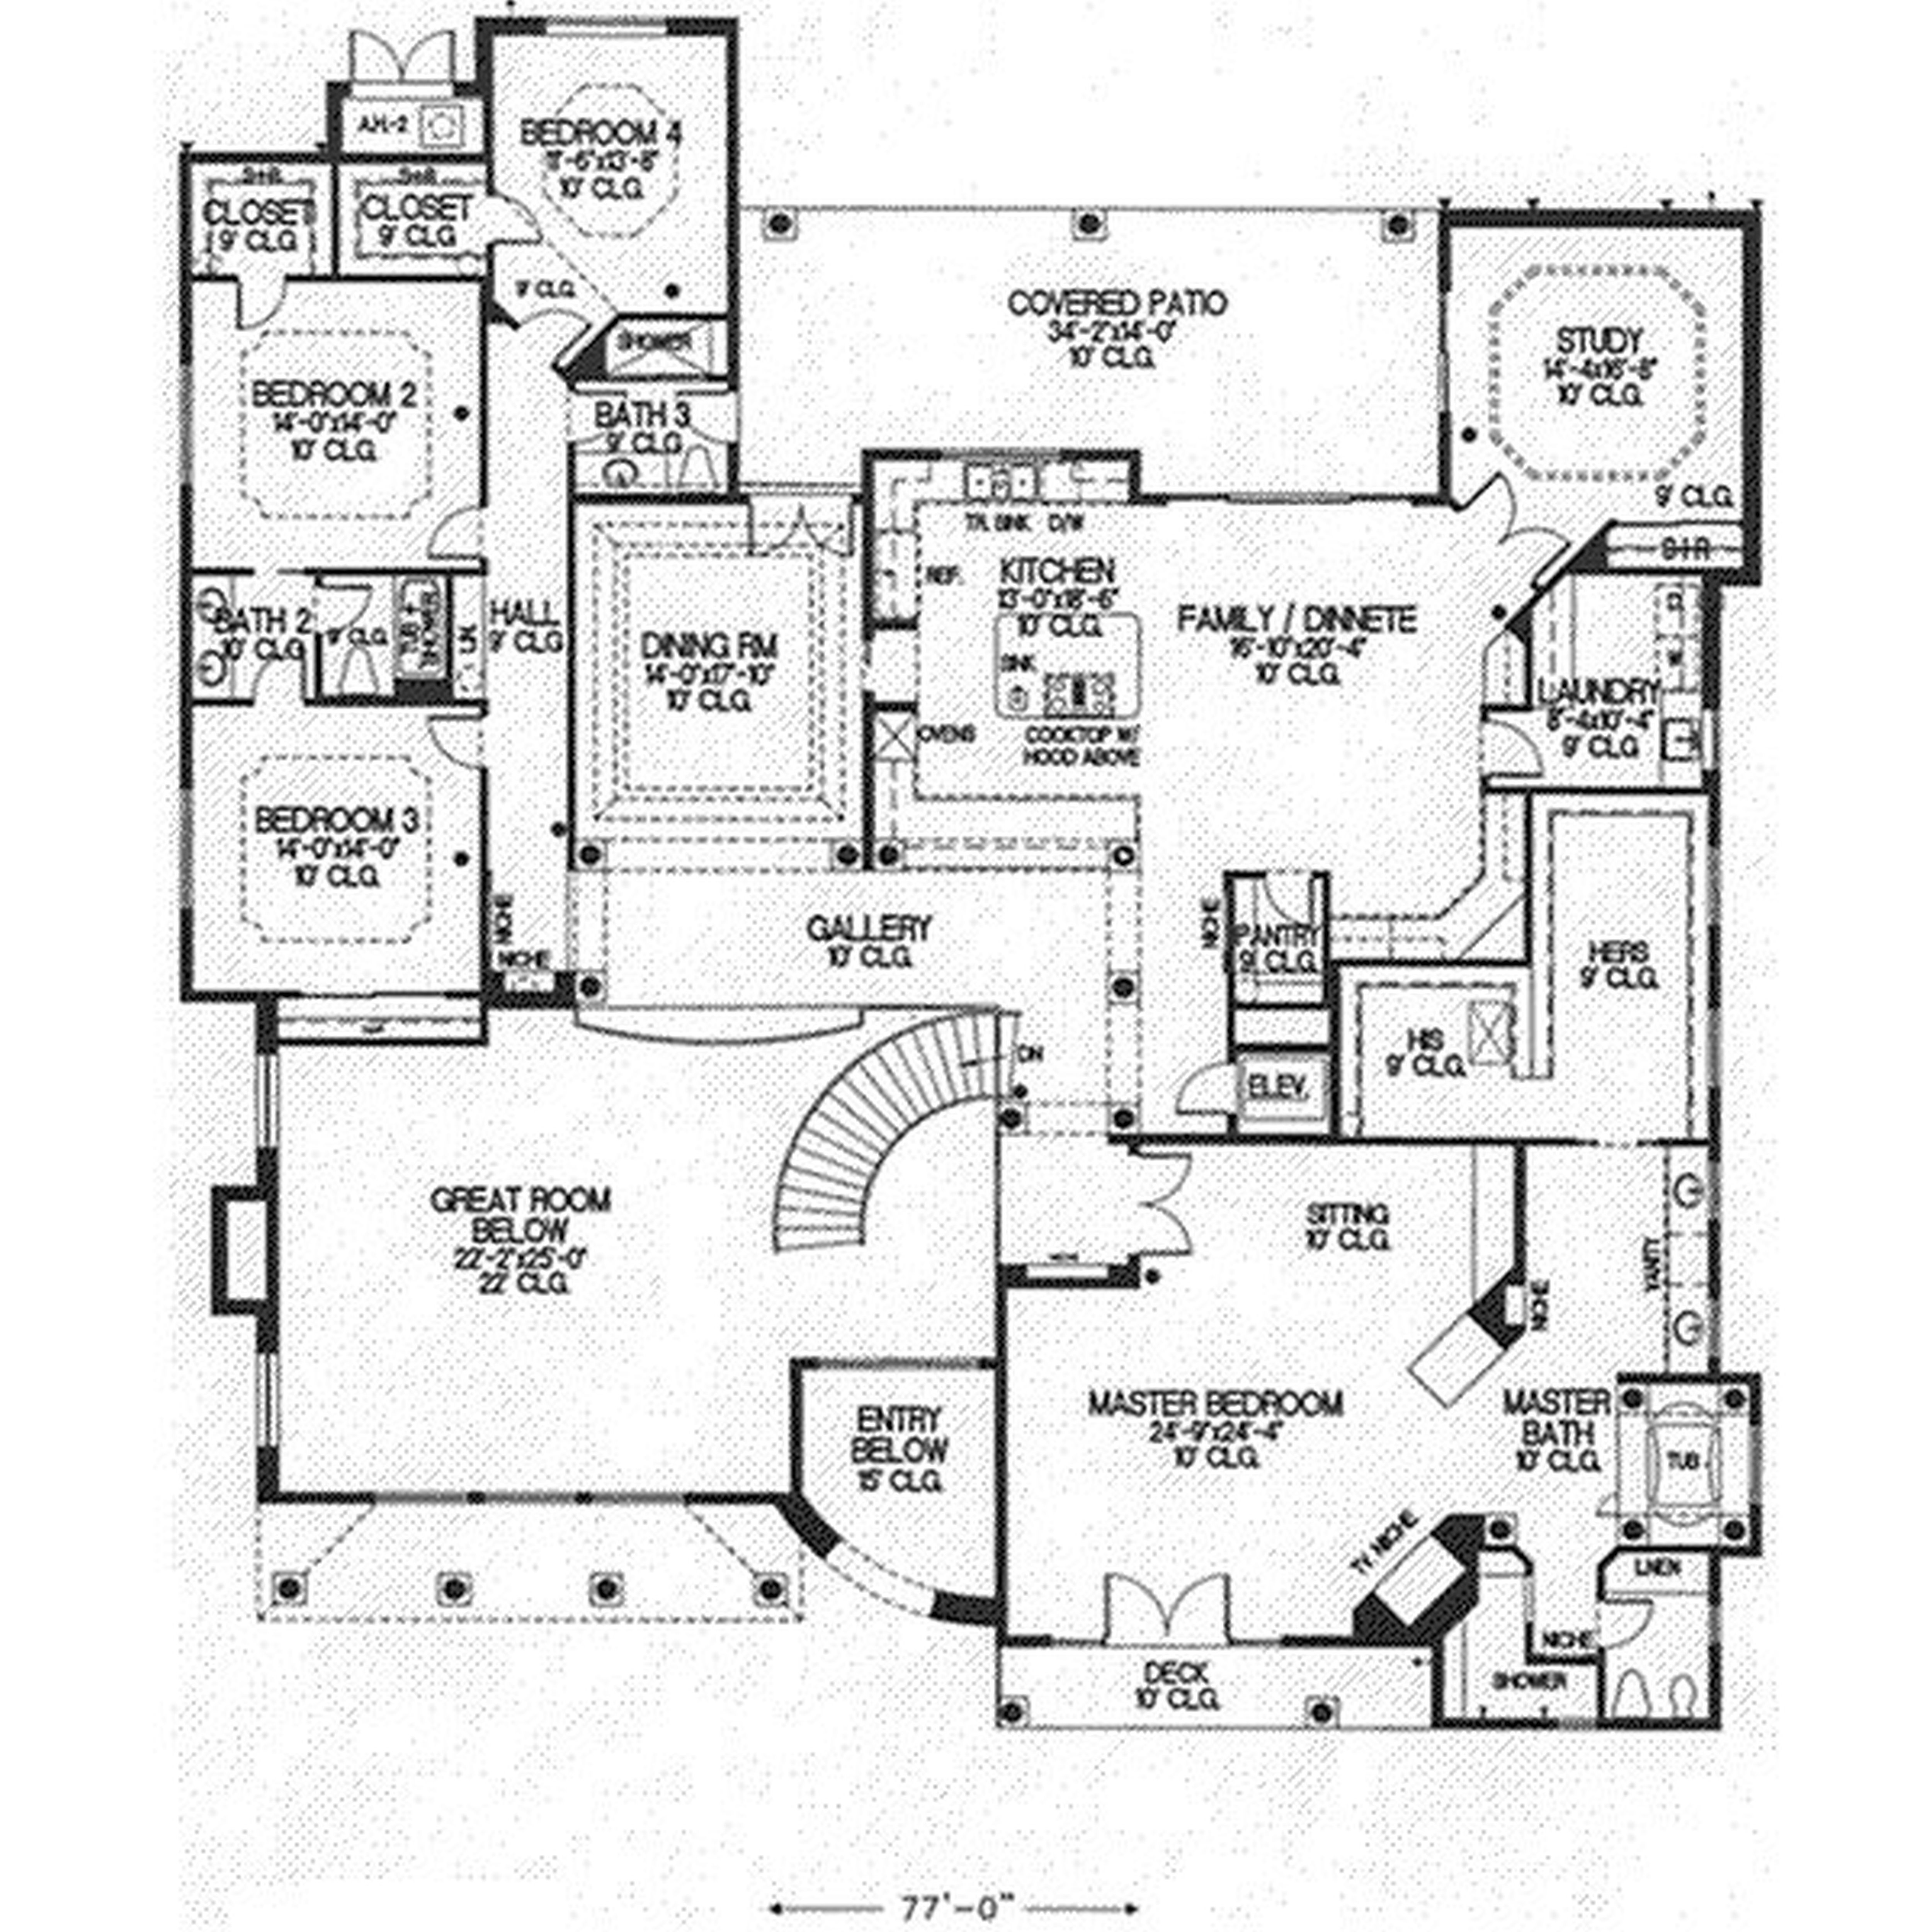 Stair Plan Drawing At Getdrawings Com Free For Personal